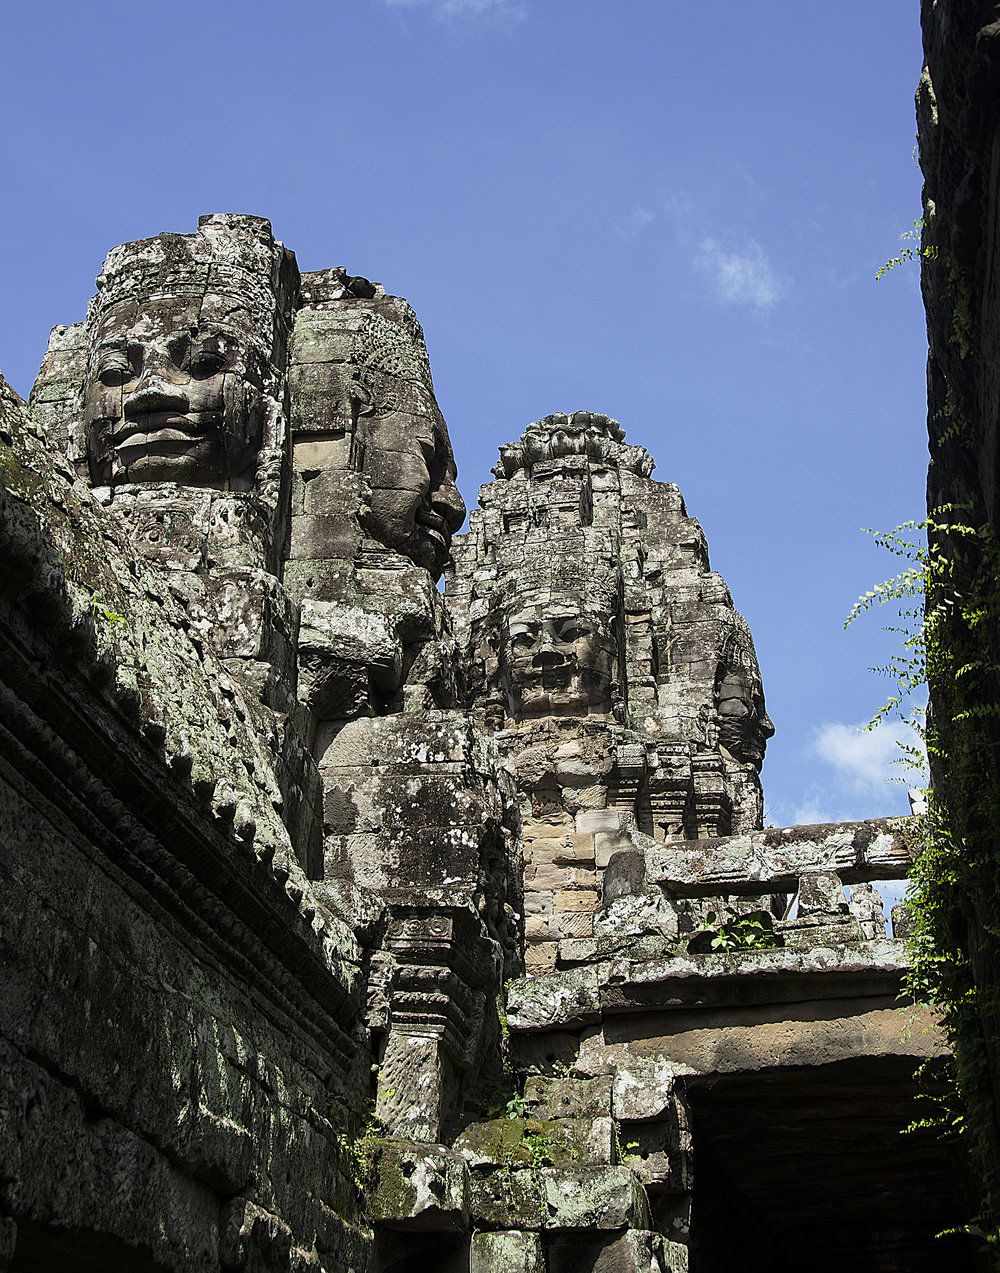 Spencer_Drake_Heads_of_Angkor_Photography_Angkor_Wat_ruins_cambodia_temple_travel_architecture.jpg